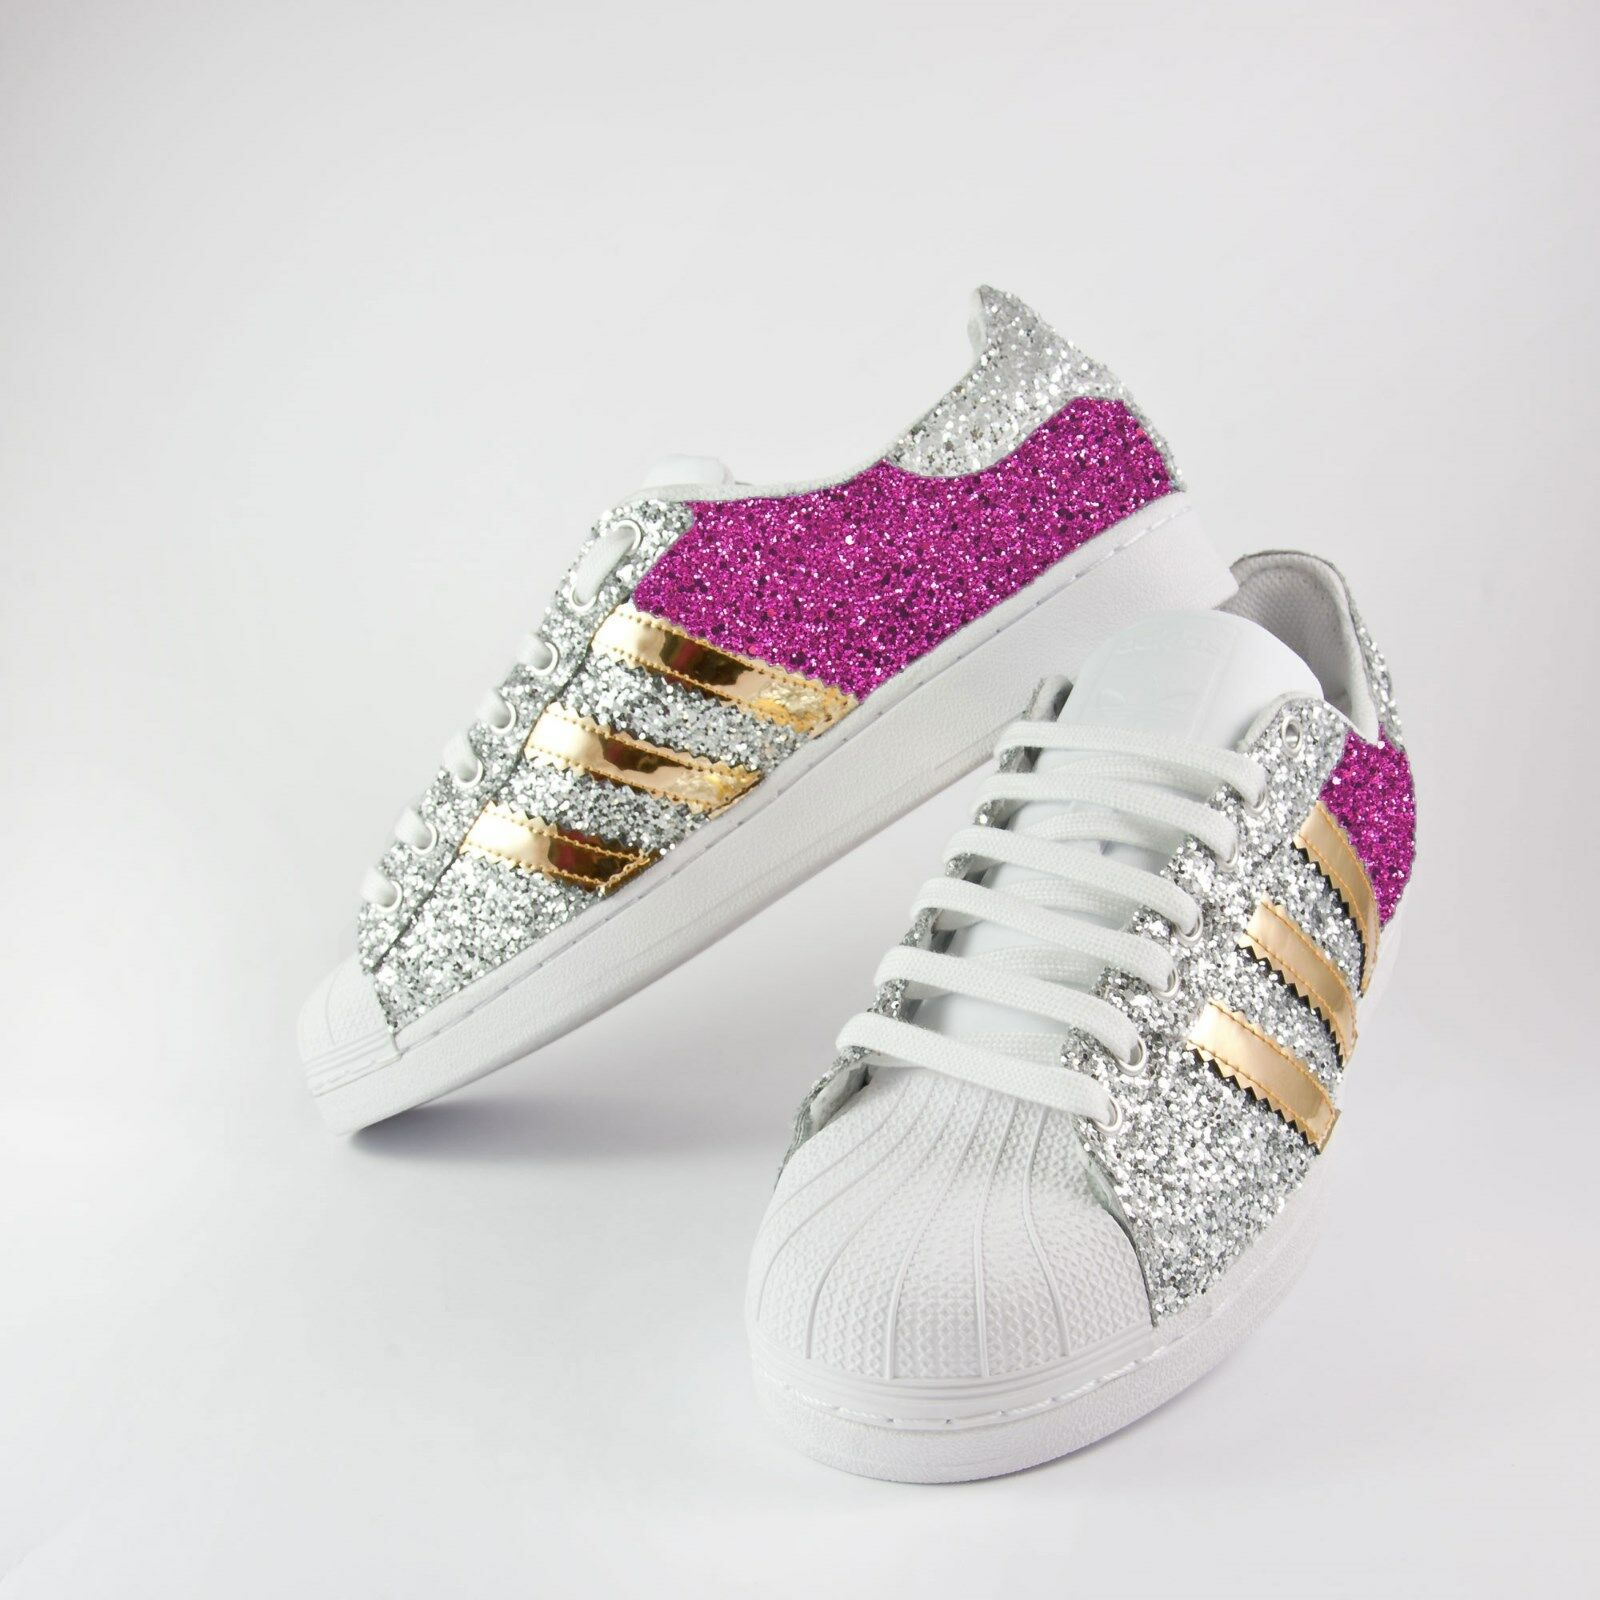 shoes Adidas Superstar with Glitter & Silver Fucxia More on Mirrored gold